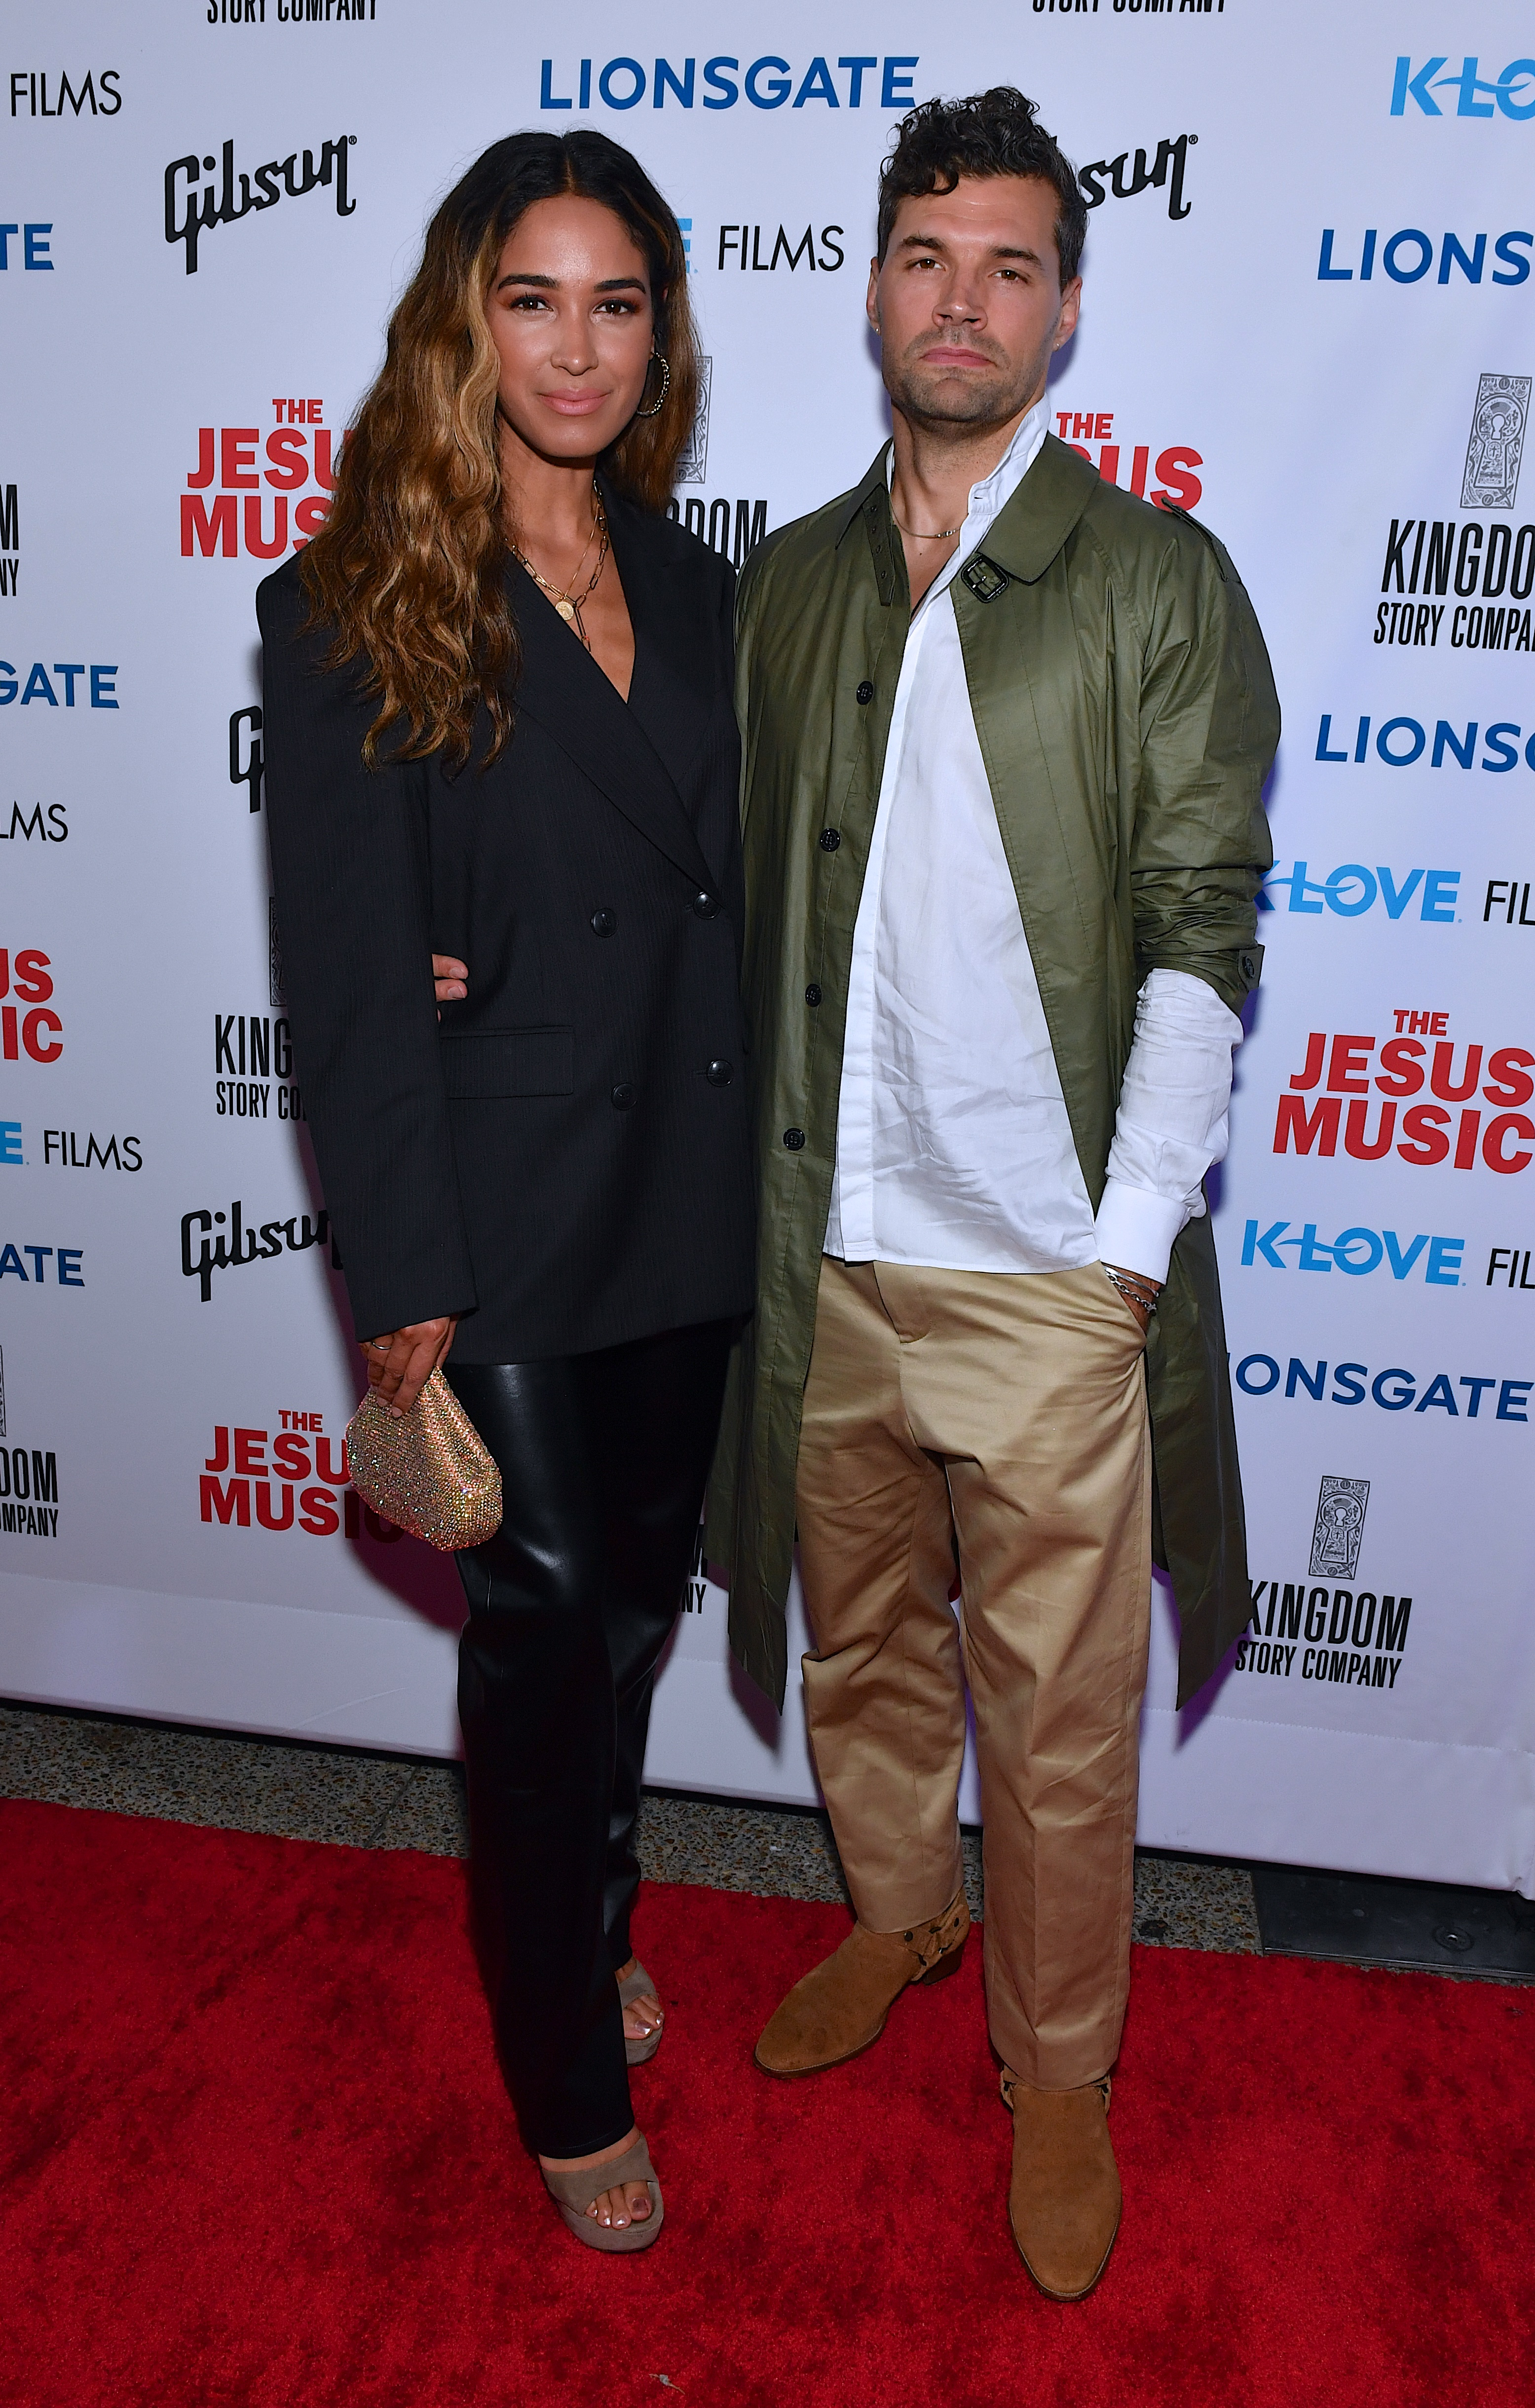 Luke Smallbone (R) and wife Moriah Peters arrive at the premiere of Lionsgate